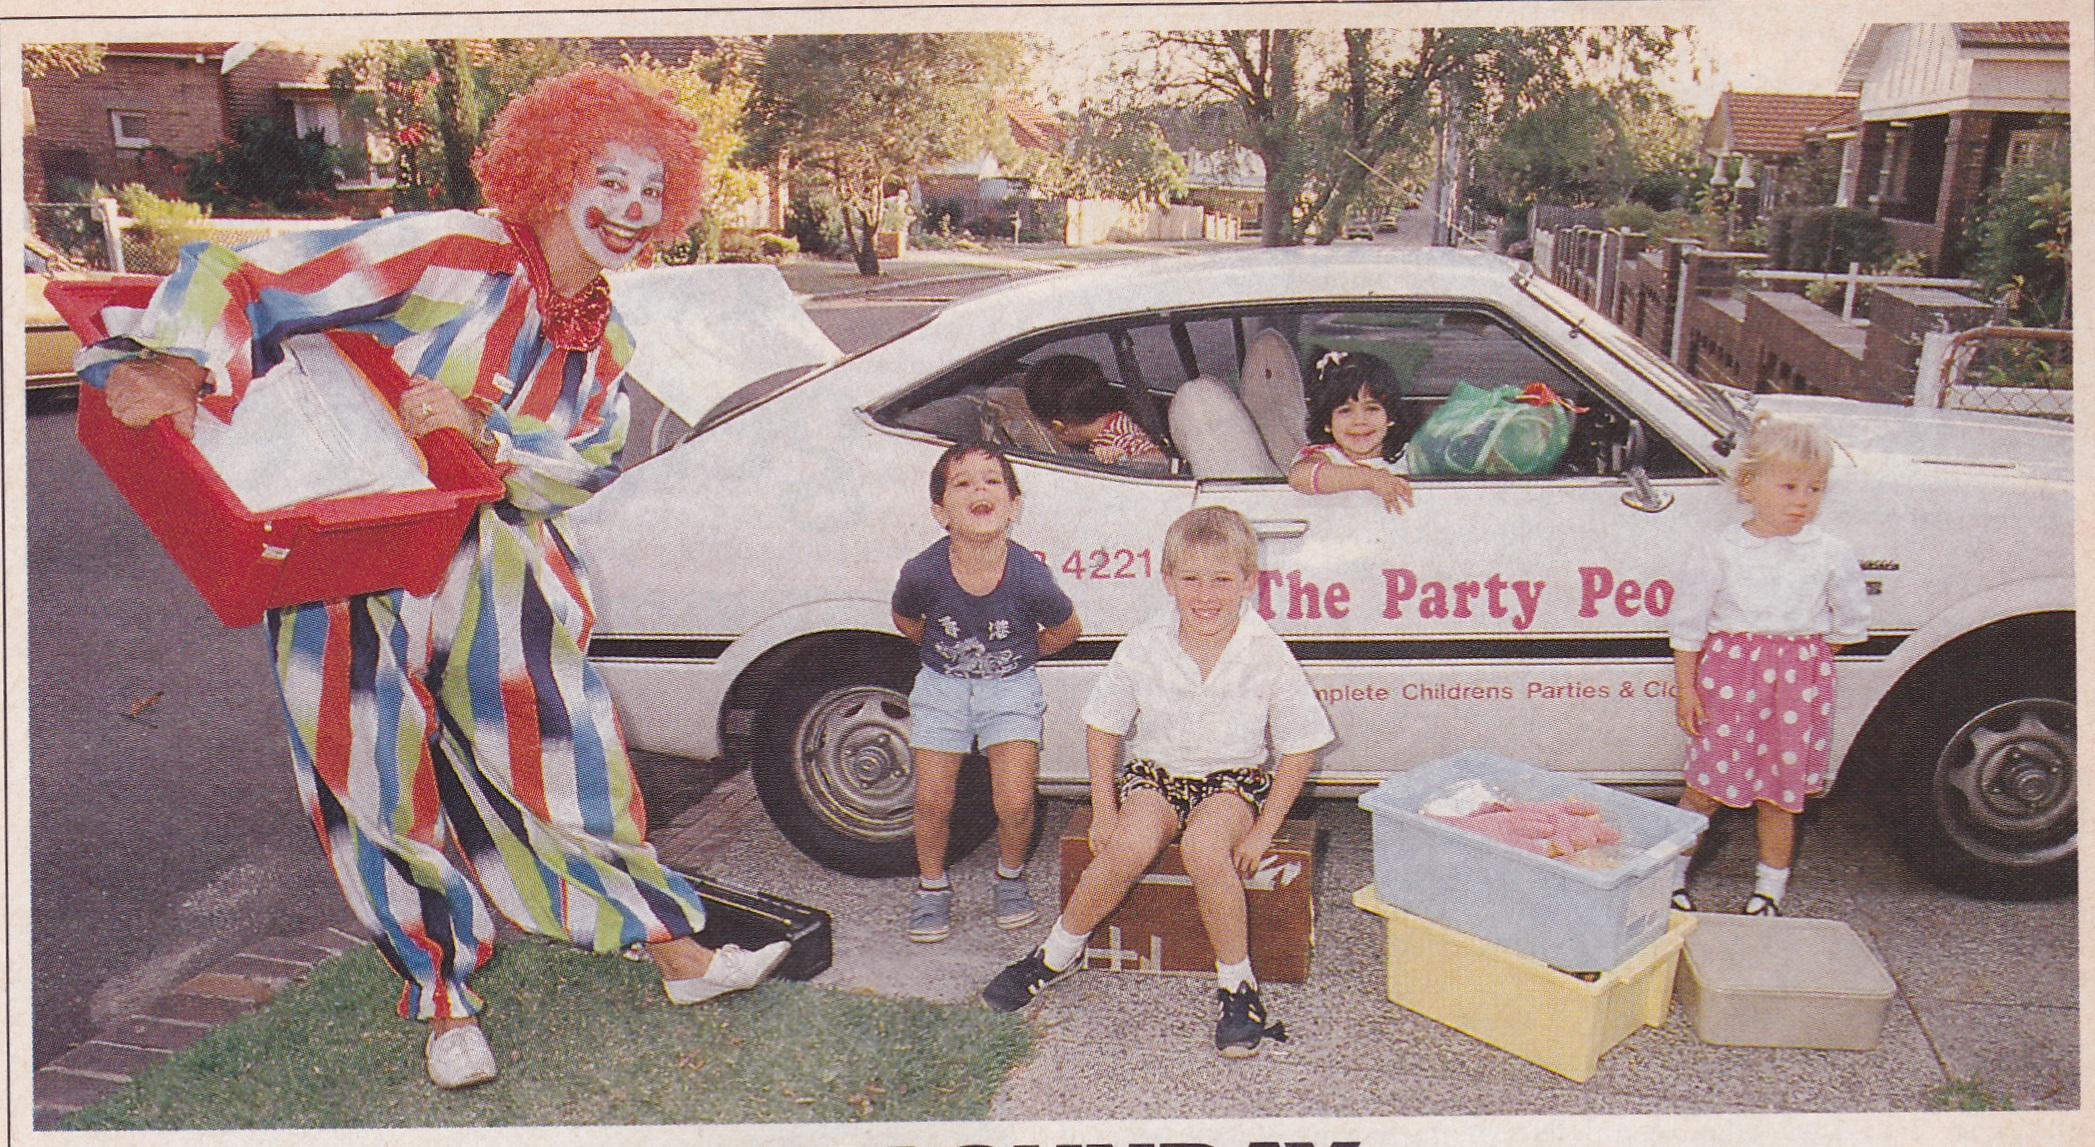 Patches The Clown in Sydney Weekender Magazine